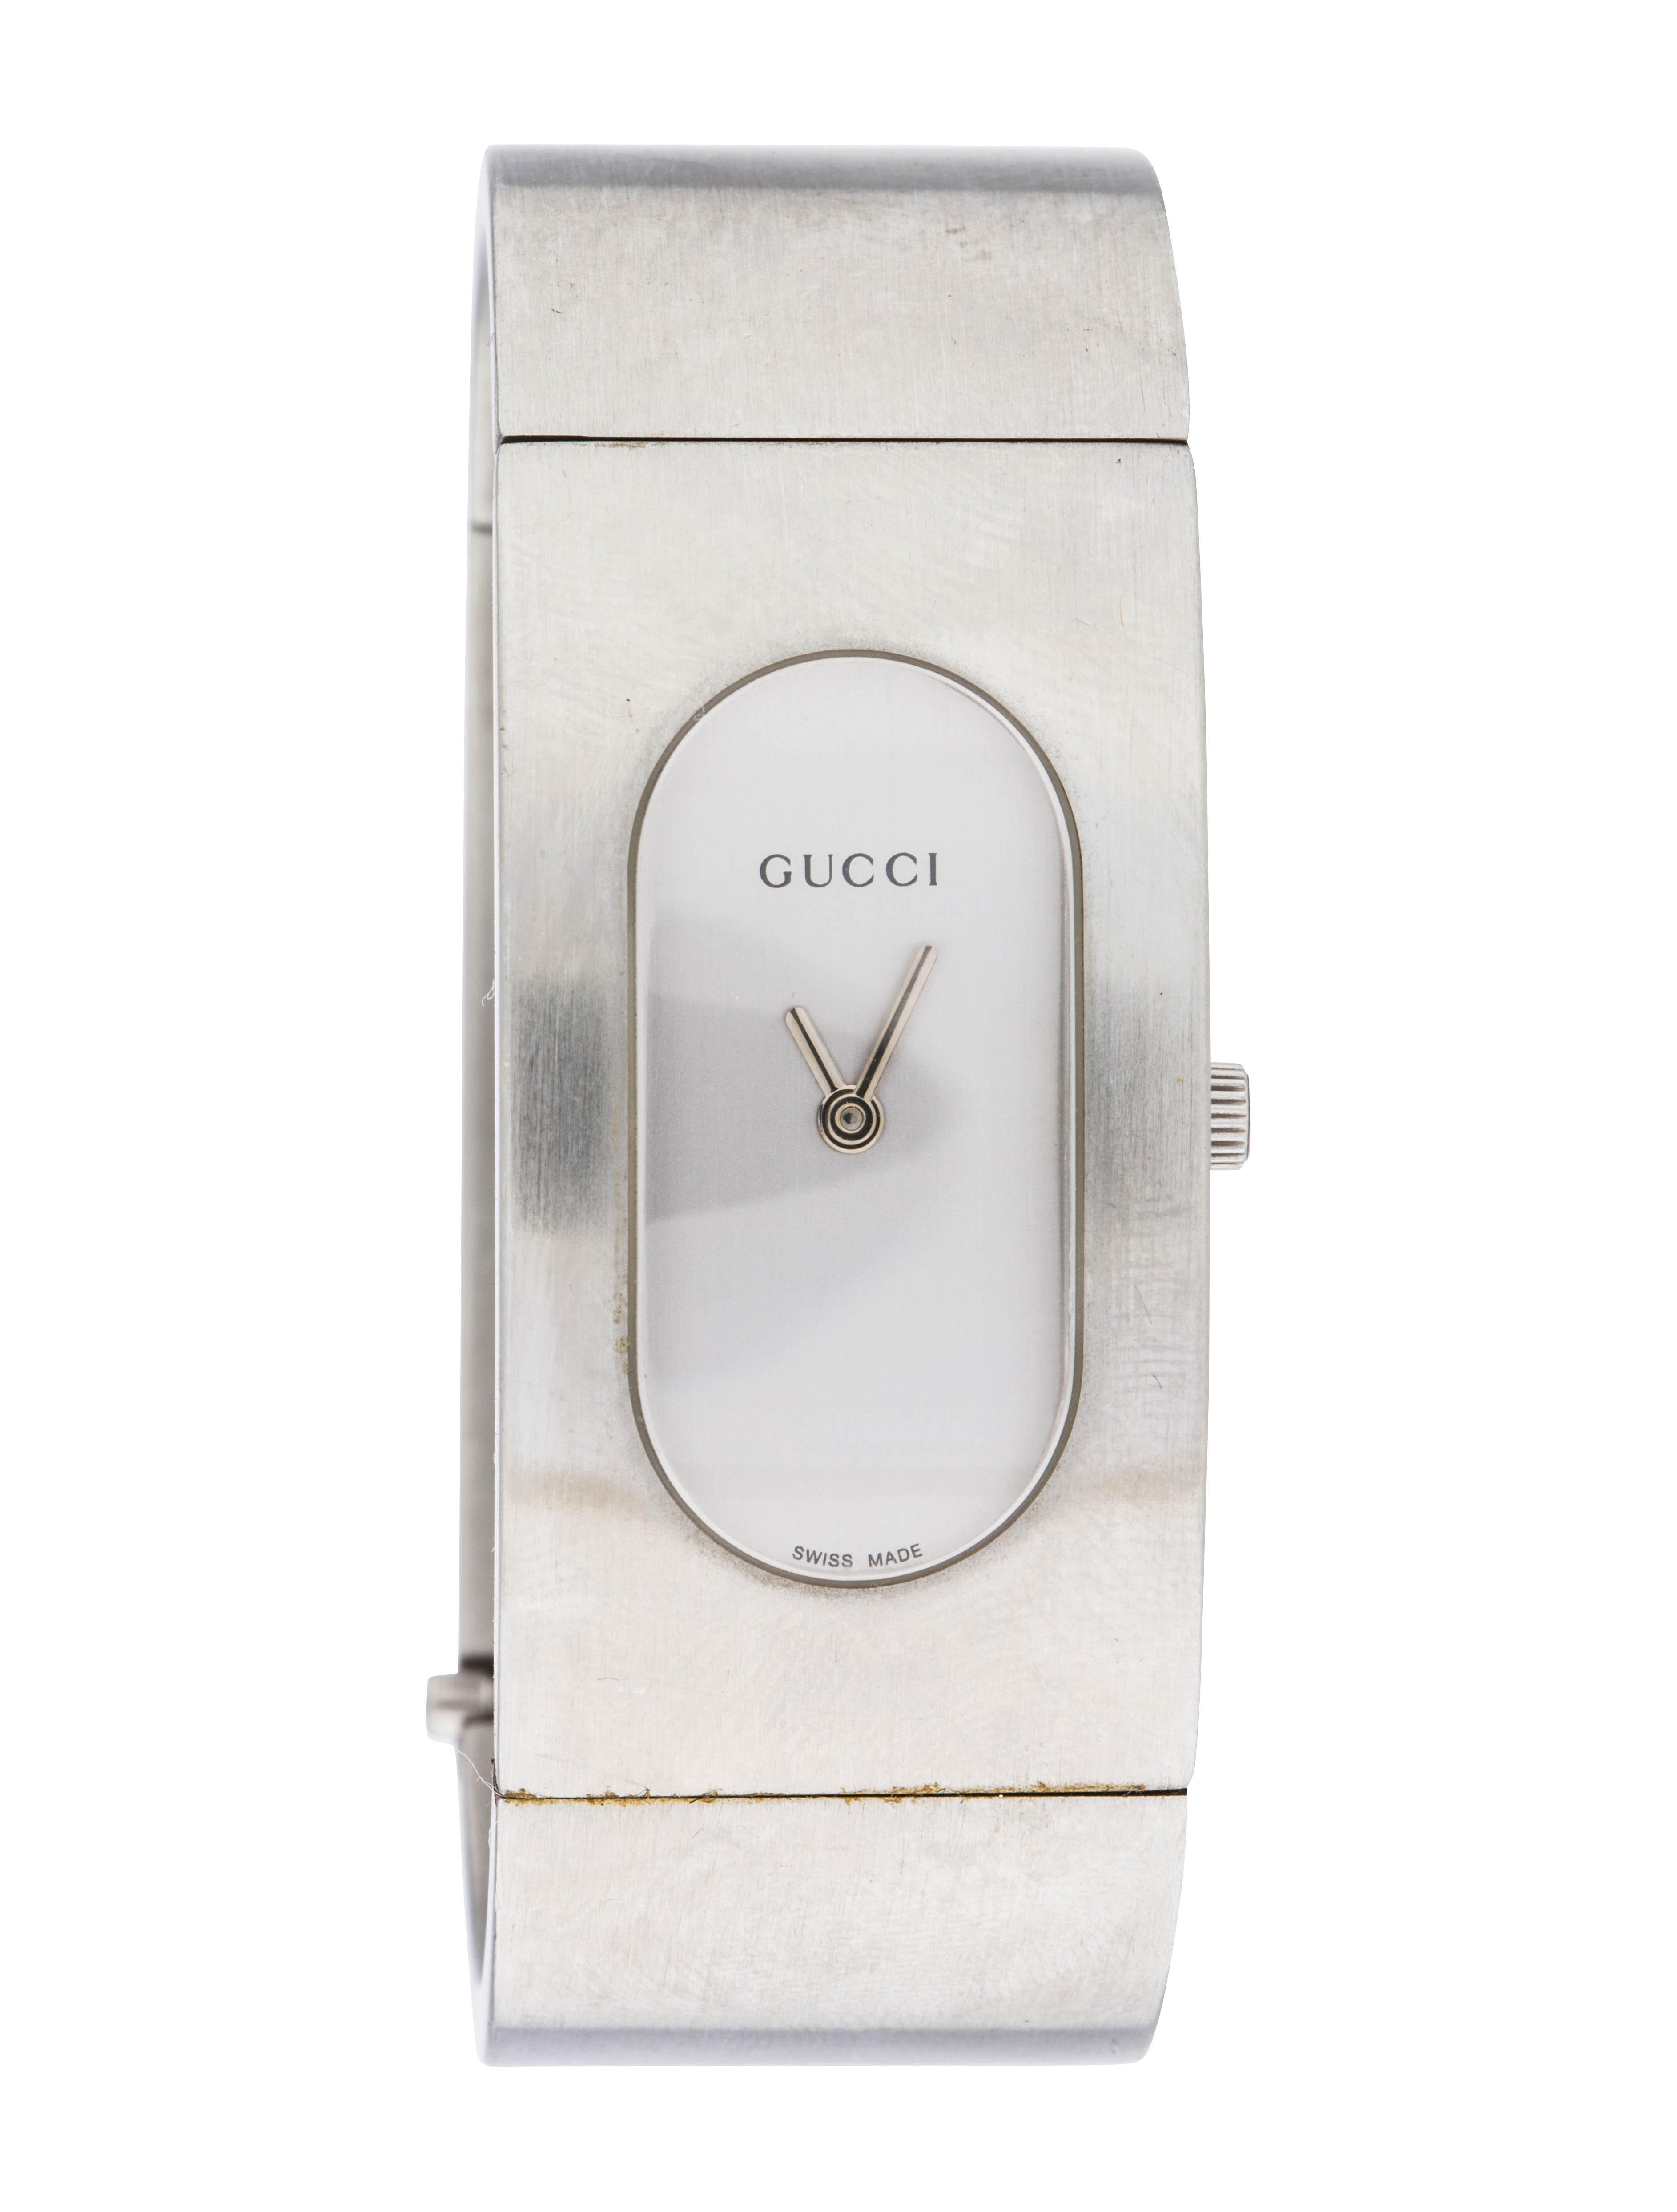 e2109ec5a96 Gucci 2400 Series Watch - Bracelet - GUC271328